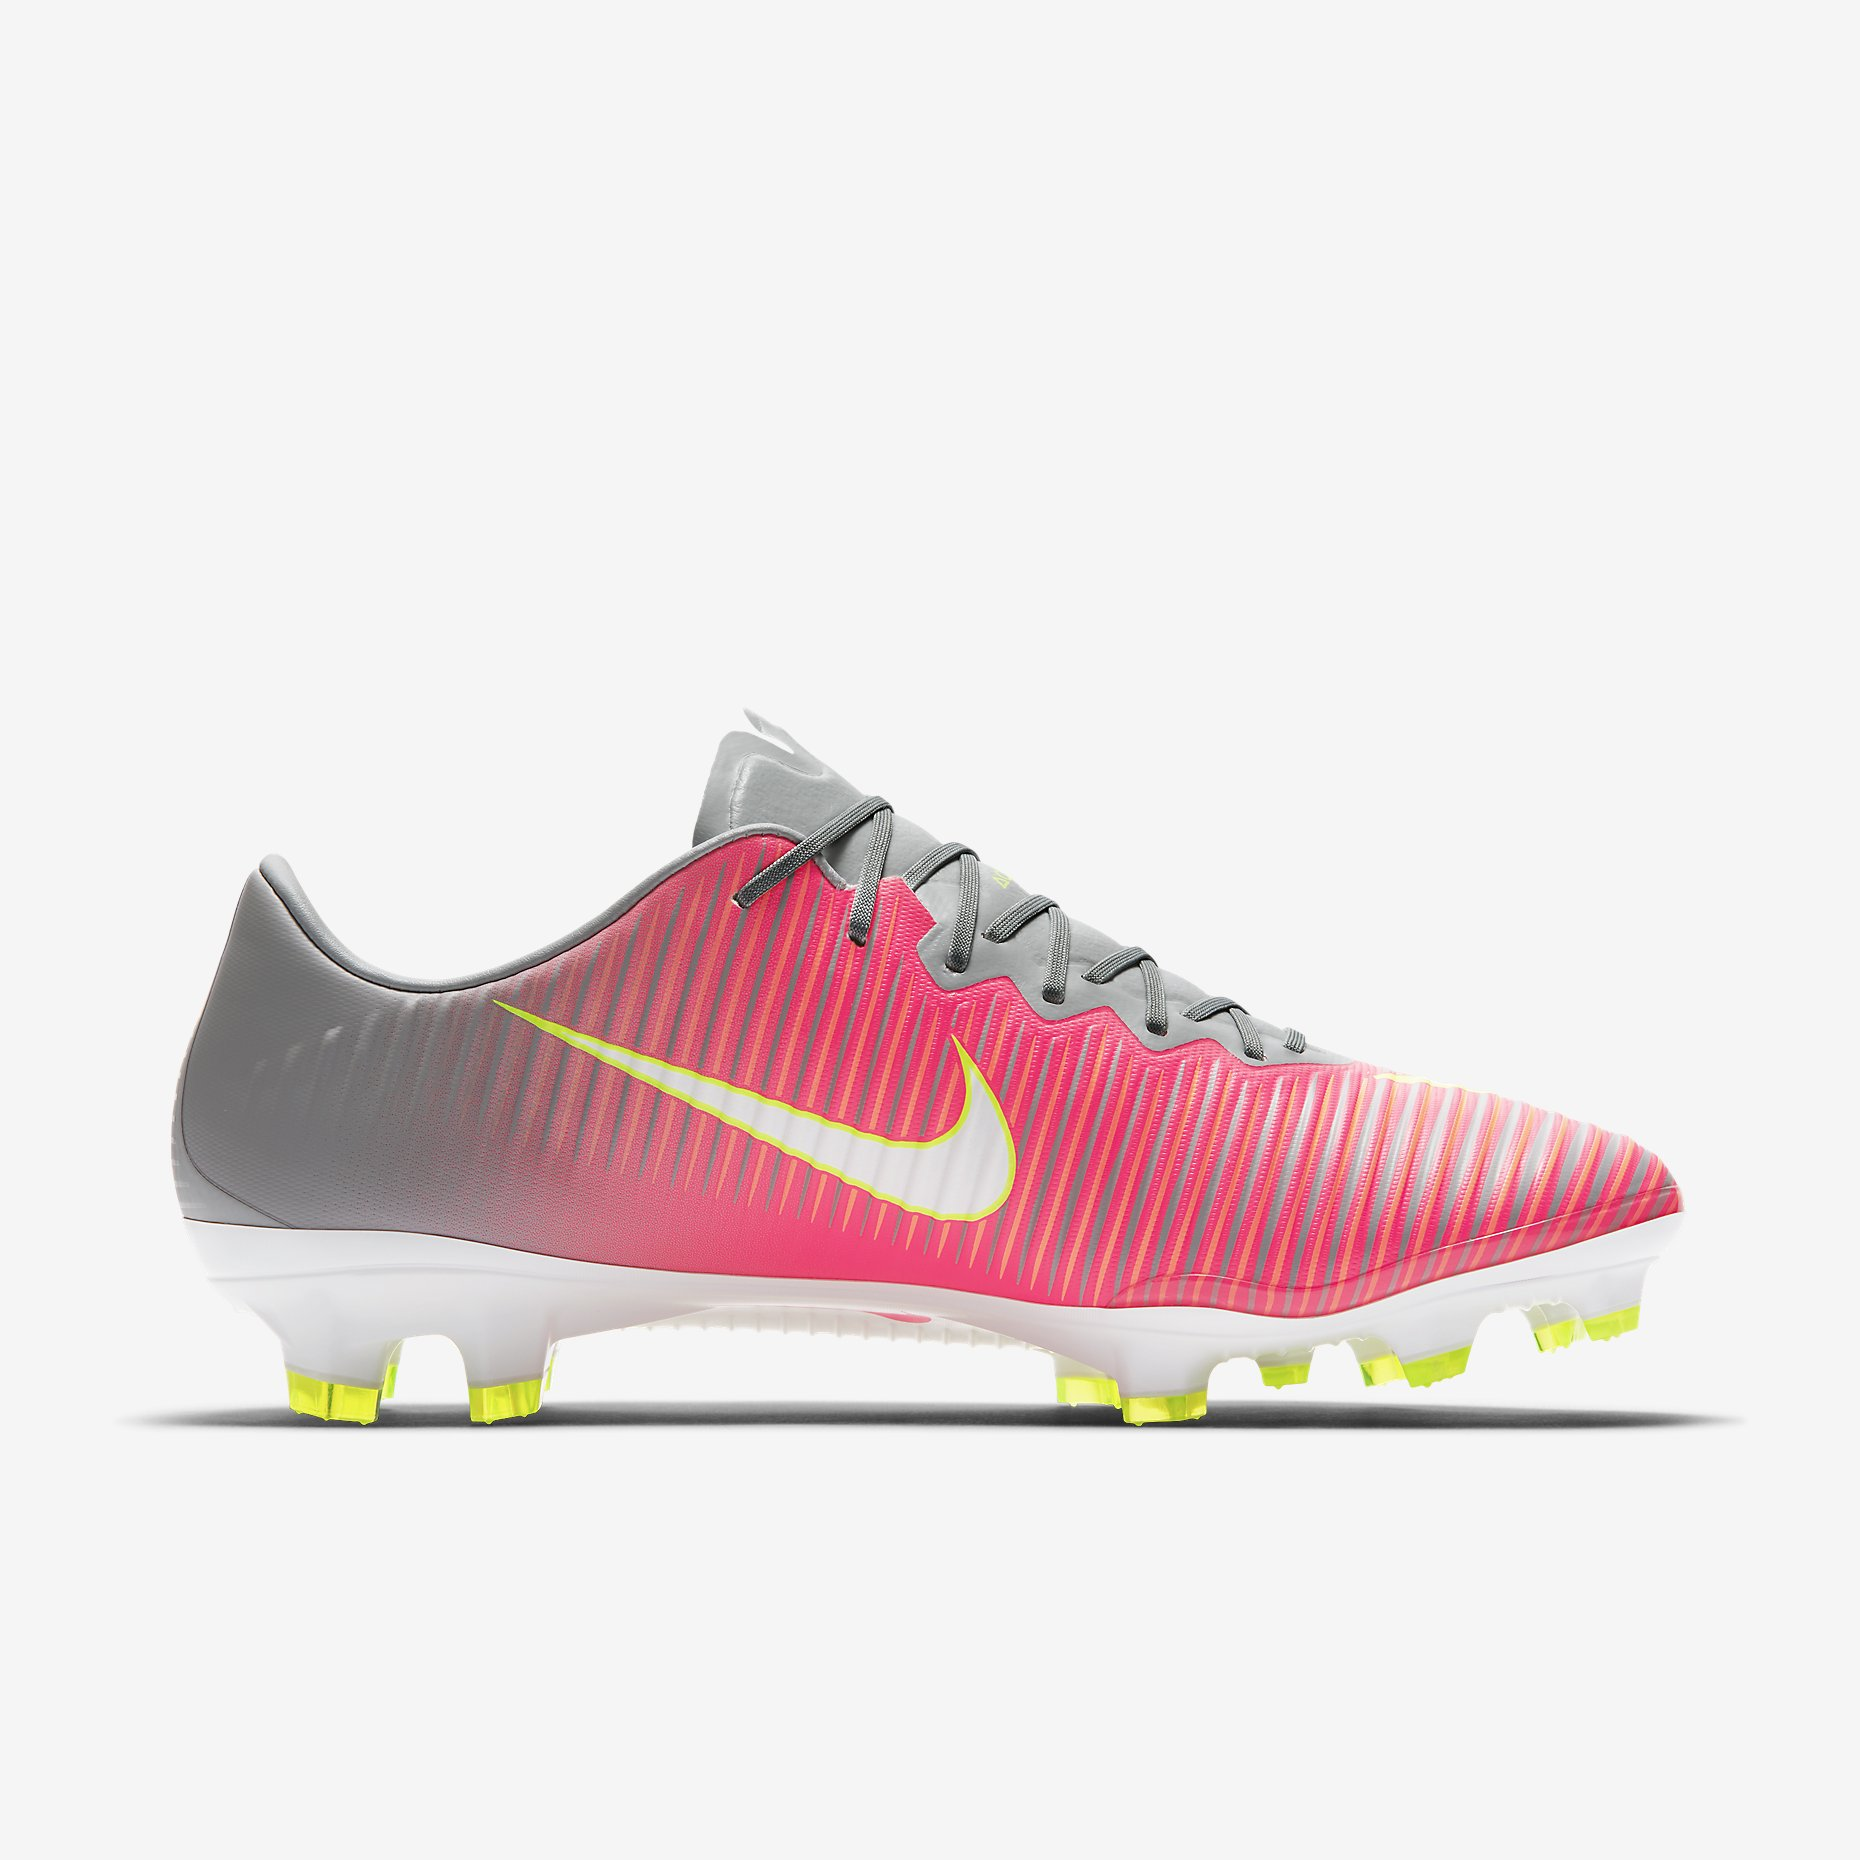 nike mercurial vapor xi women 39 s fg motion blur hyper pink wolf grey tart white. Black Bedroom Furniture Sets. Home Design Ideas